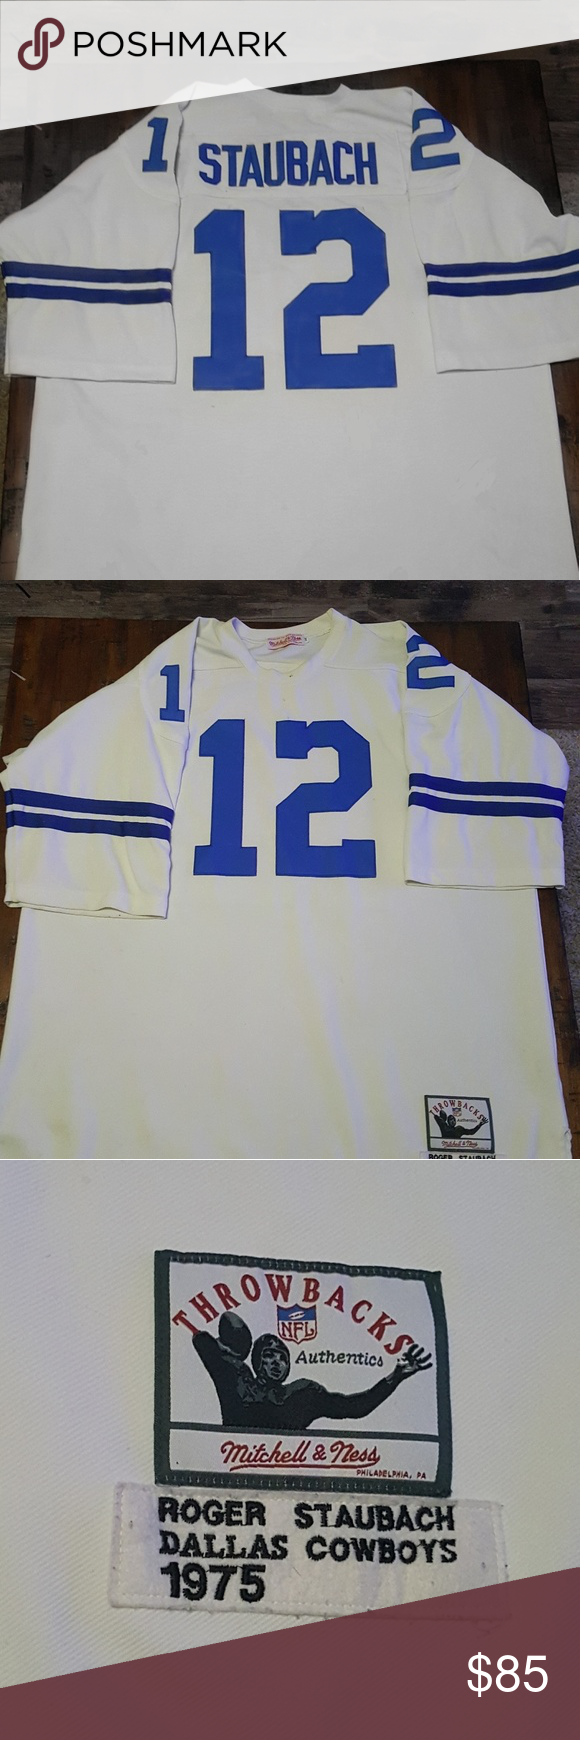 save off 71ec1 01203 Roger Staubach Jersey Authentic 1975 Mitchell and Ness Roger ...